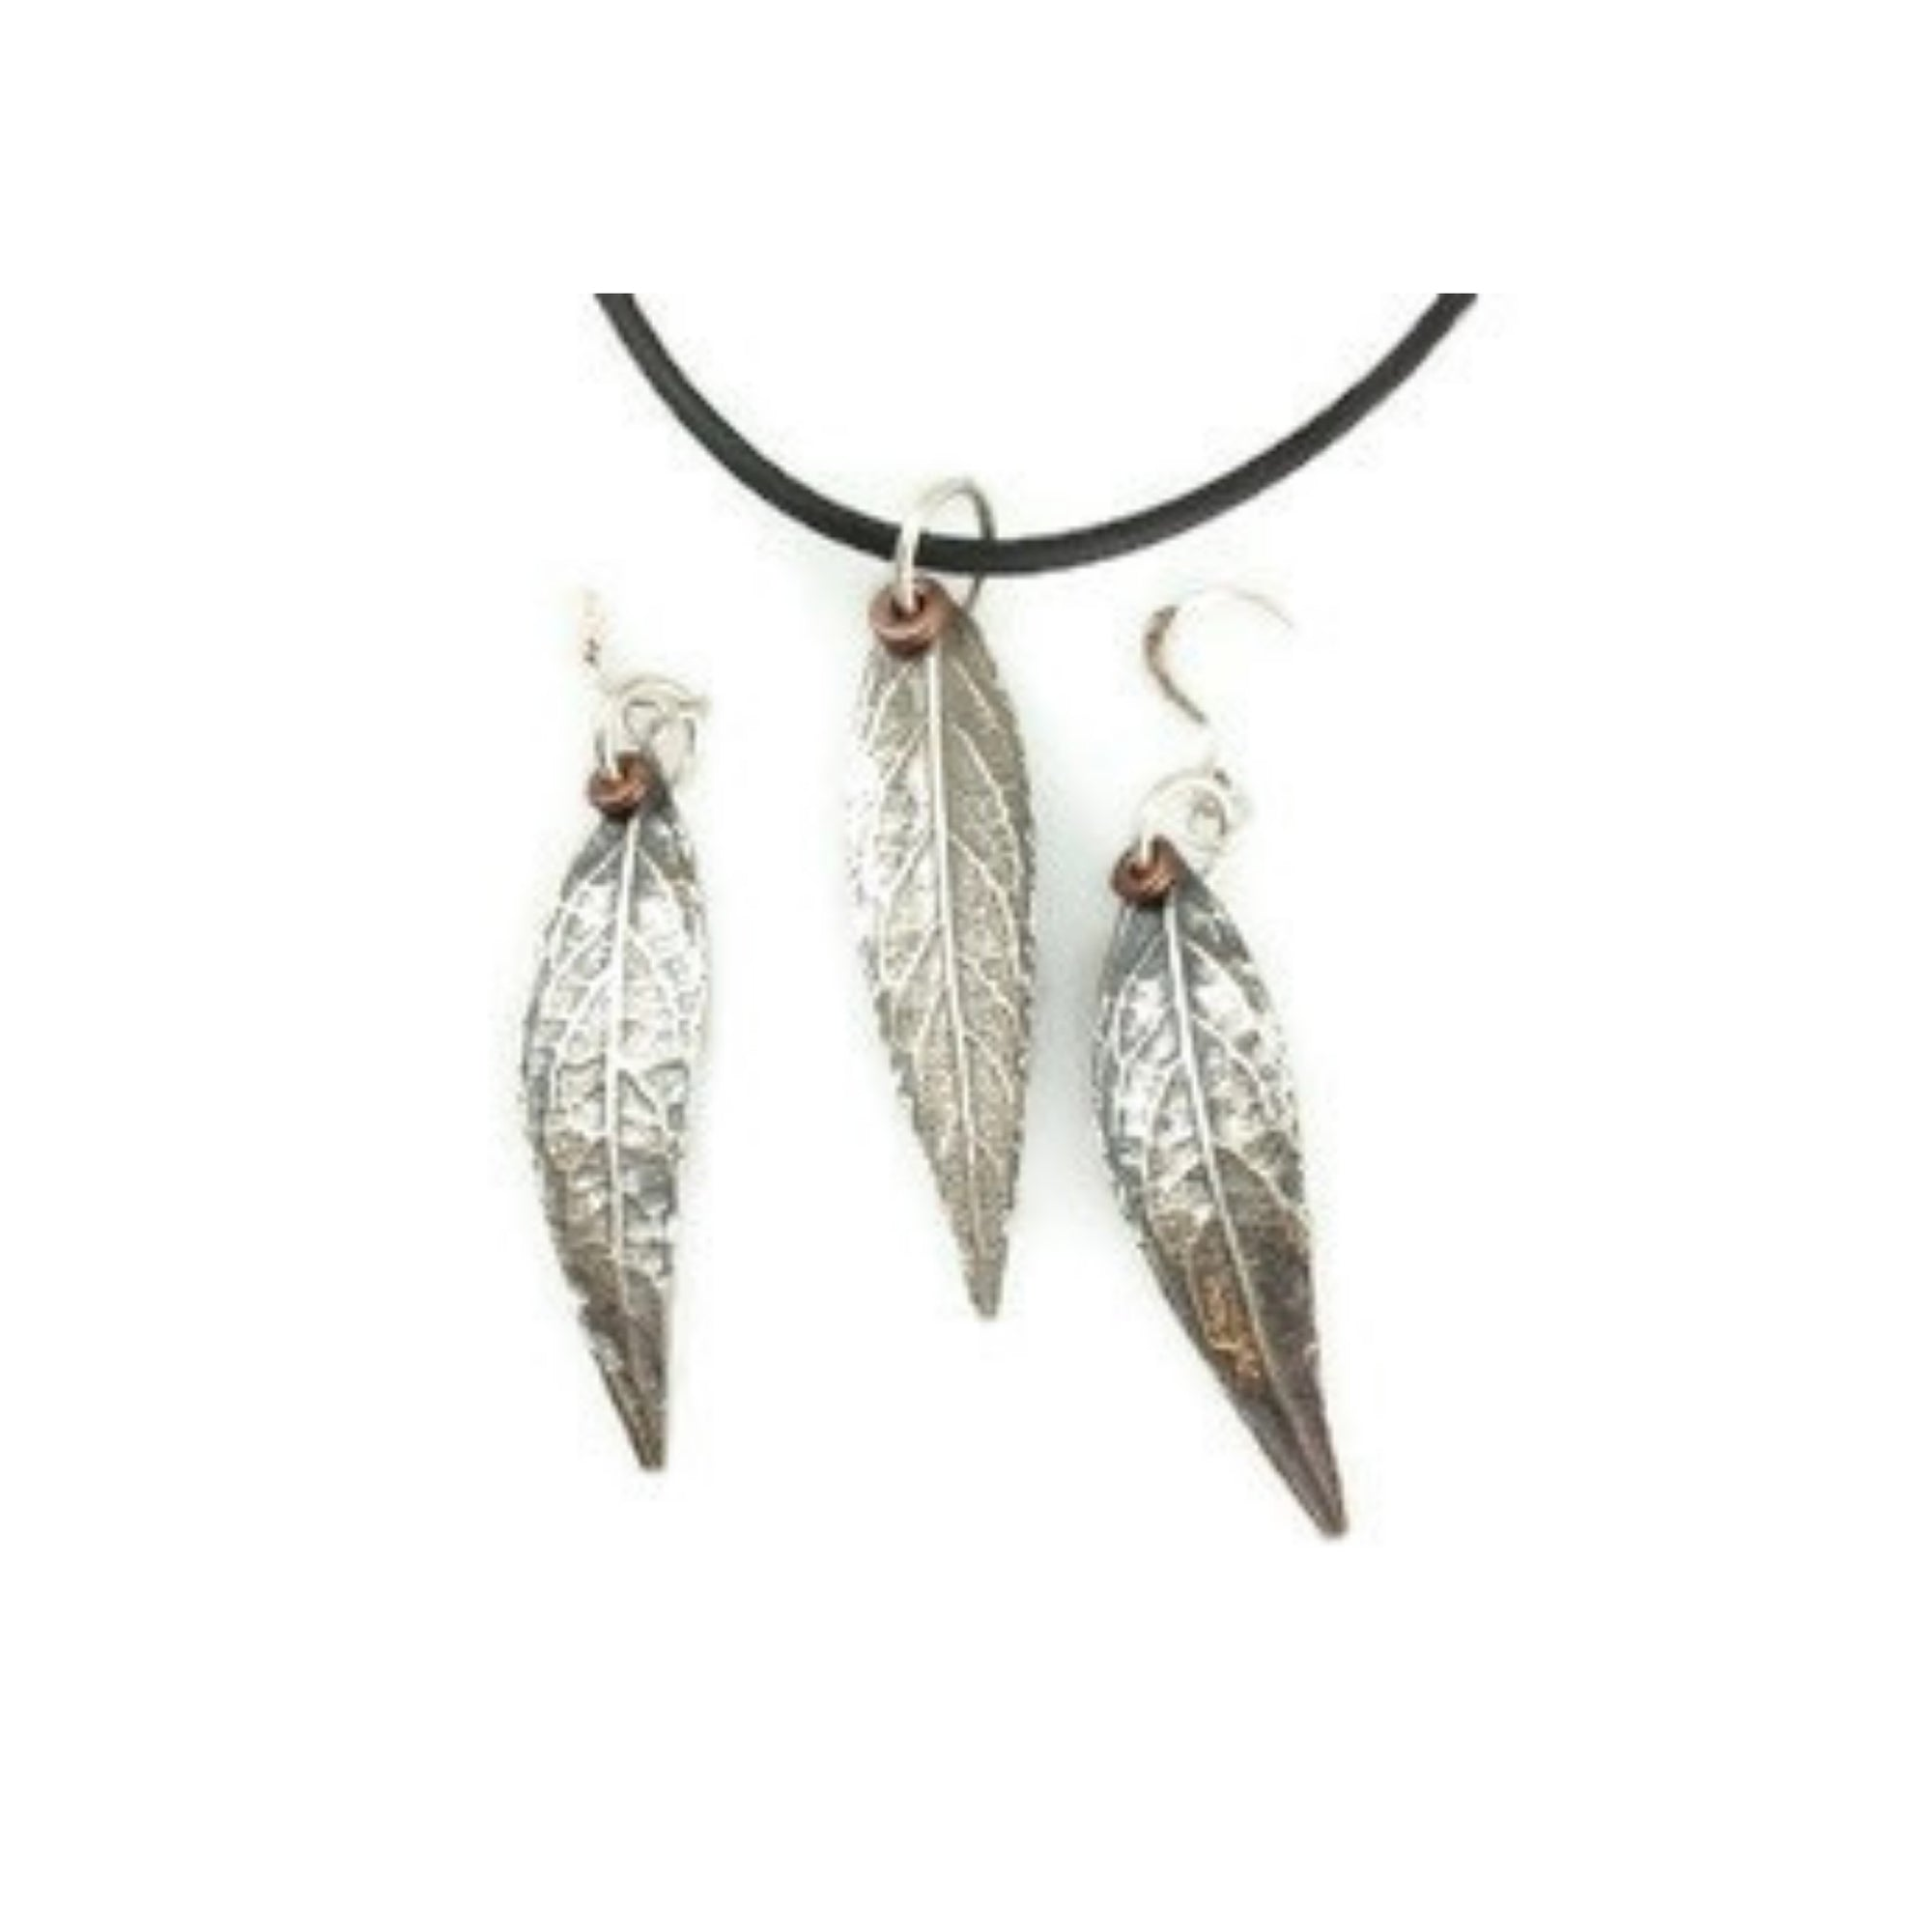 Fine silver pendant and earrings made of ArtClay Silver metal clay from a  butterfly bush leaf mold. Suspended on black cord and accented with copper.